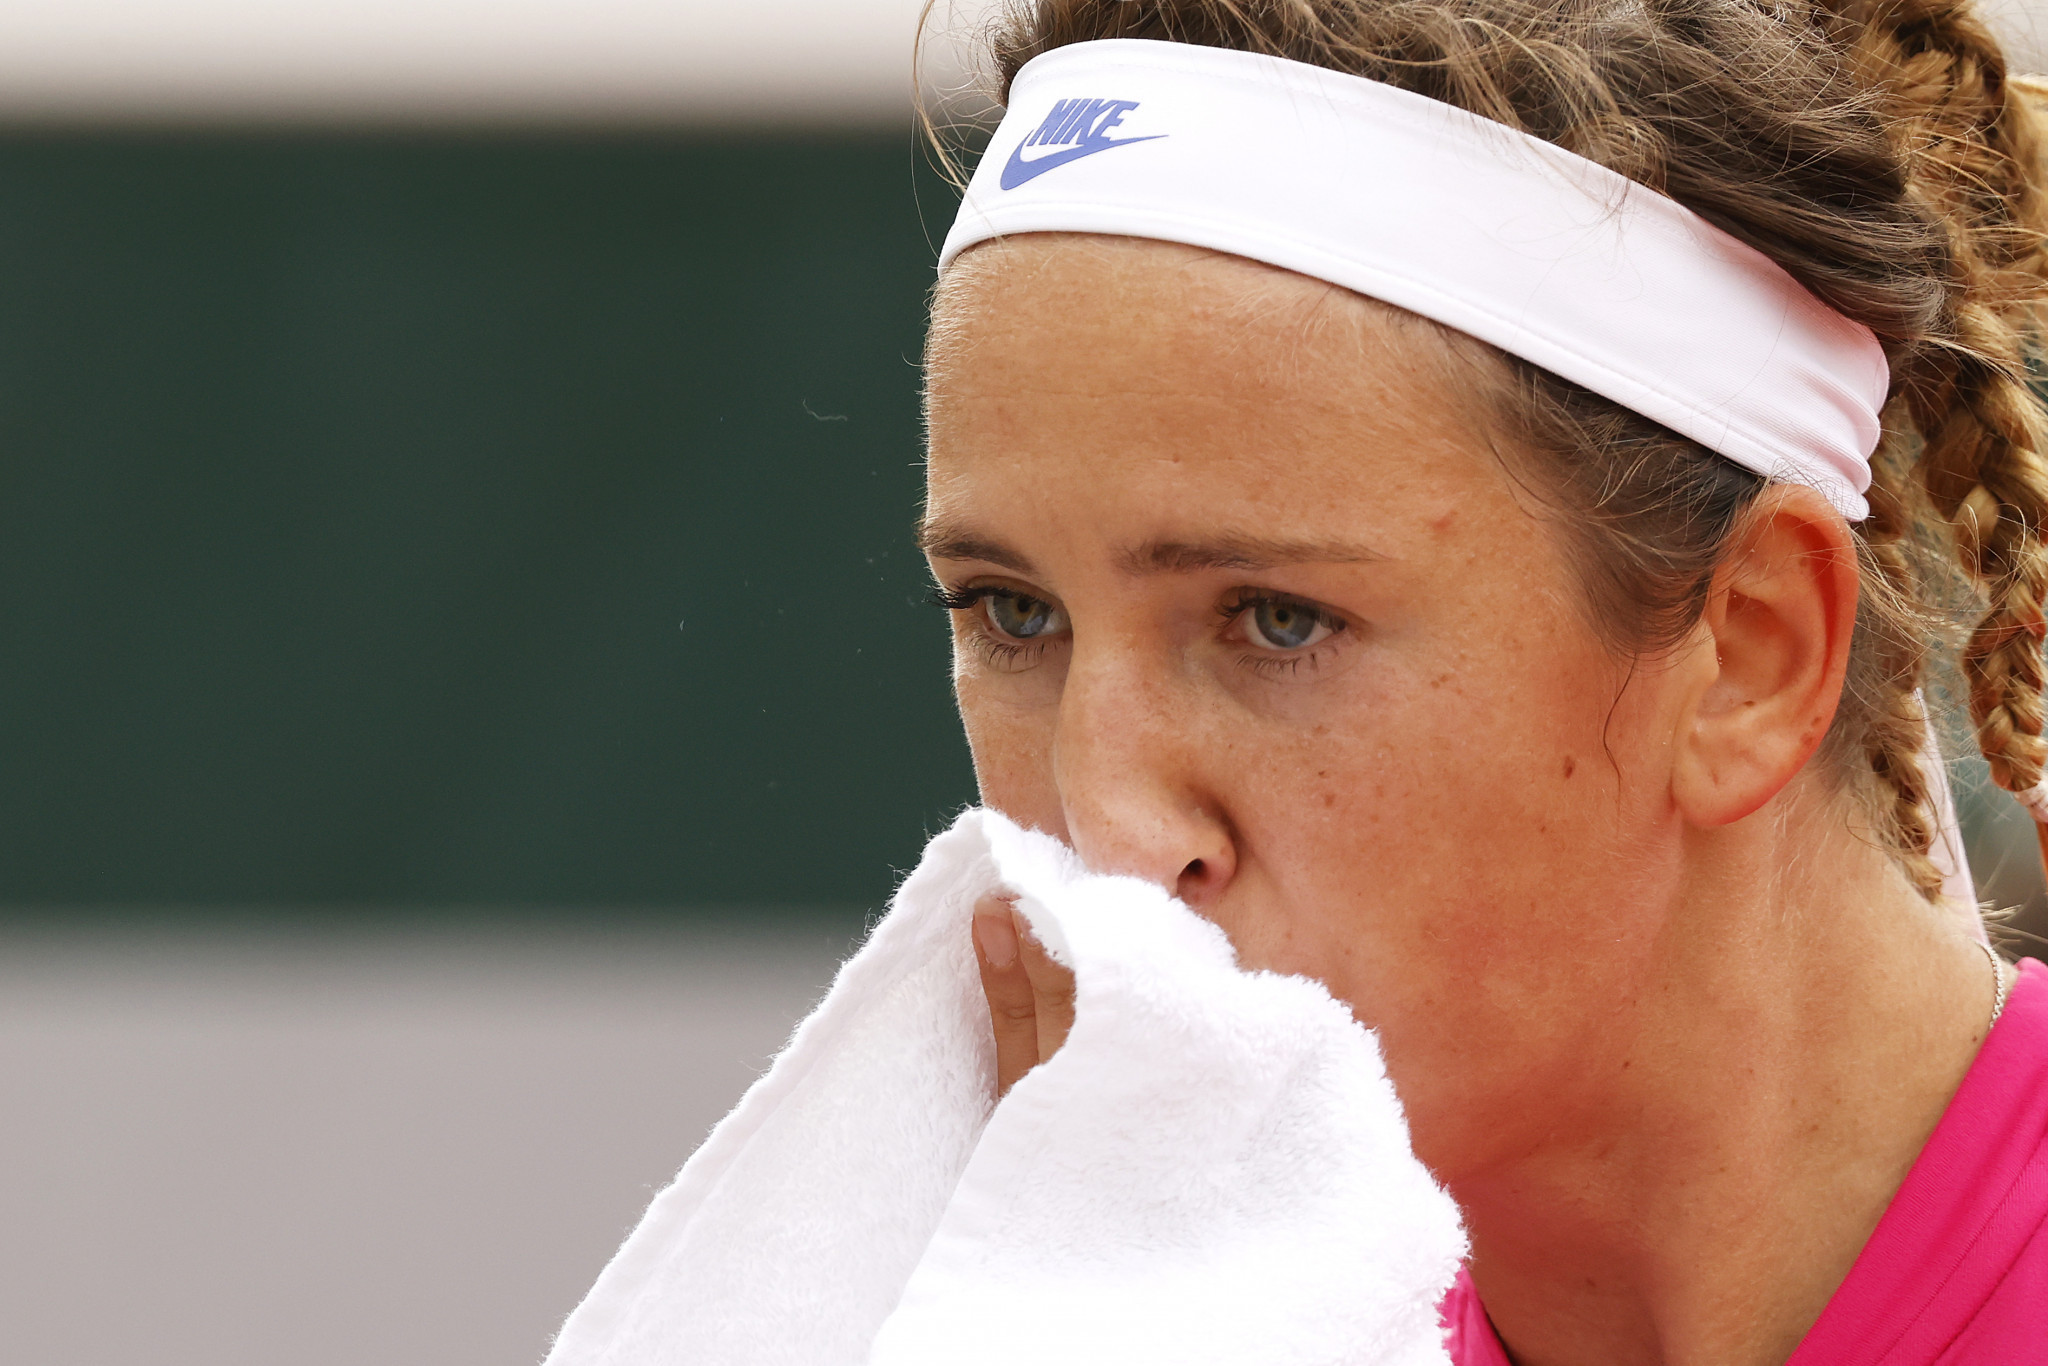 US Open runner-up Victoria Azarenka was the biggest casualty on the women's side of the draw on day four ©Getty Images